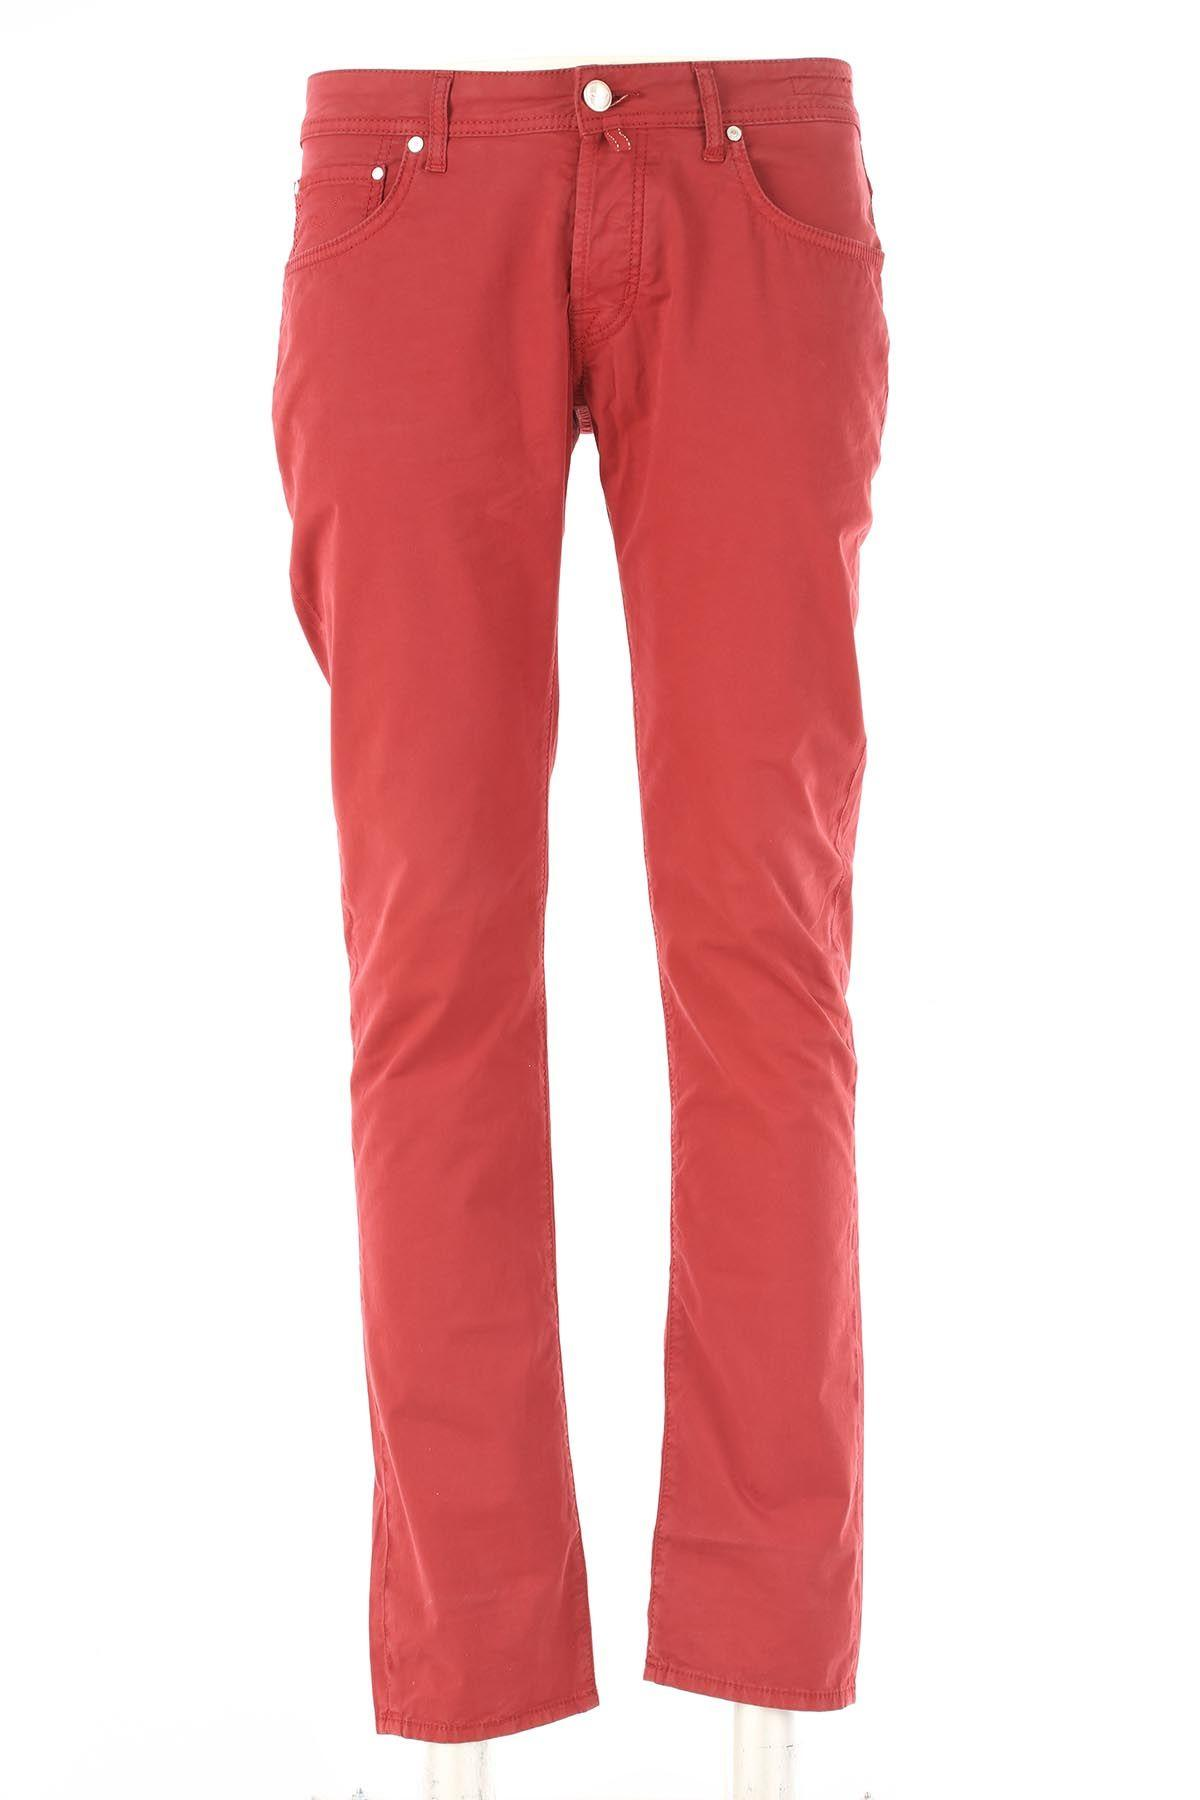 Jacob Cohen Skinny Trousers In Red